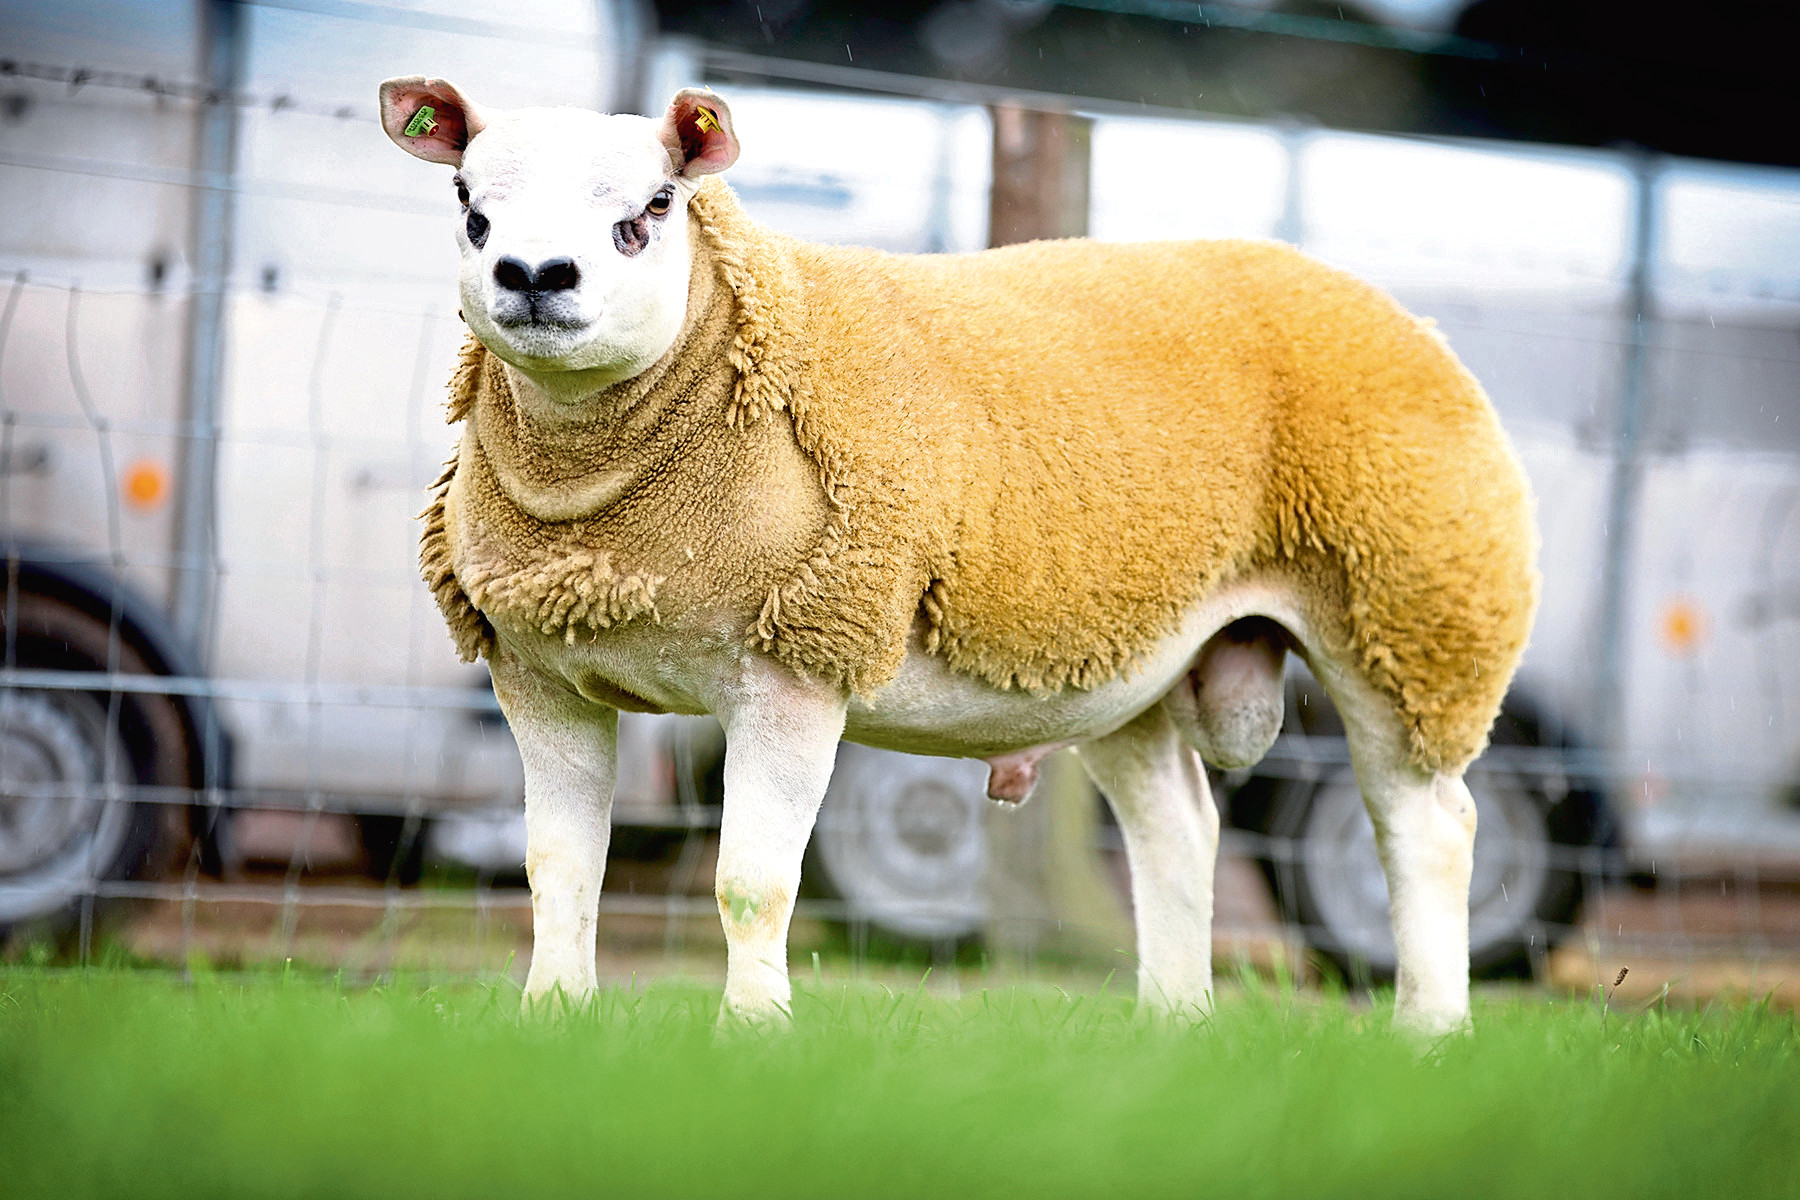 Rhaeadr Best Of The Best sold for 125,000gn at the Texel sale in Lanark in August 2018.